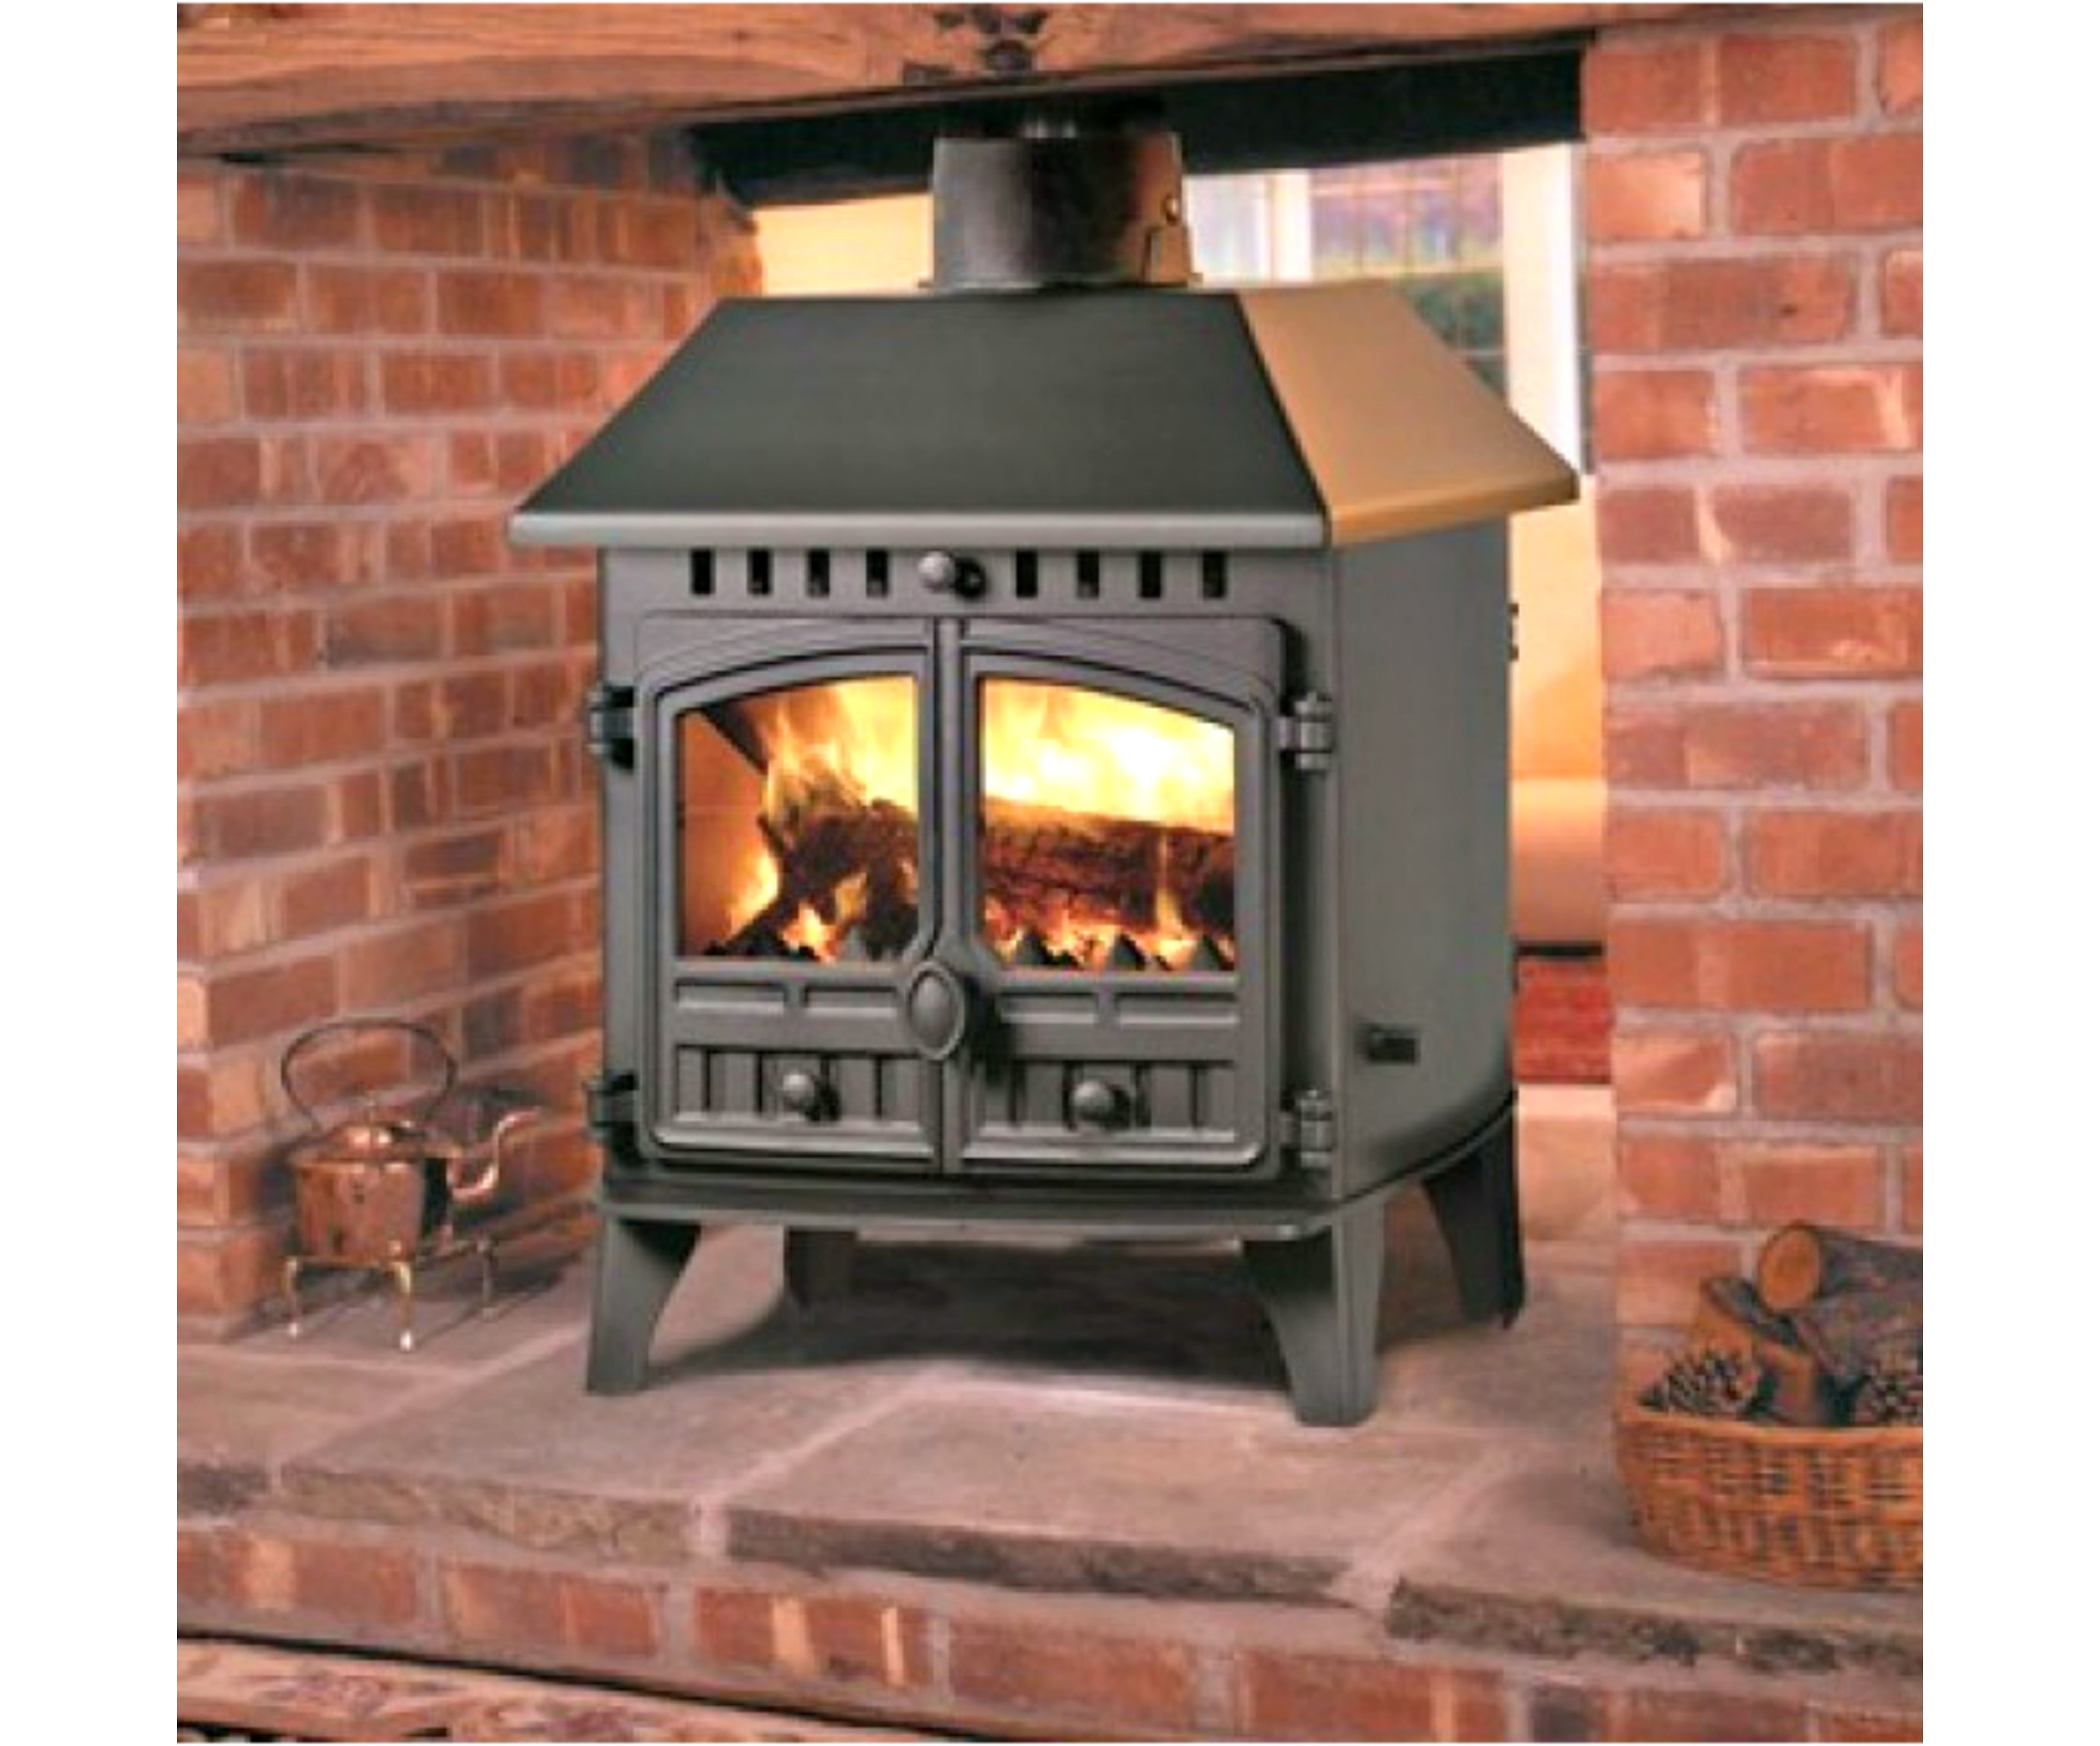 Hunter herald 14 double sided multifuel woodburning stove for Poele bois double combustion